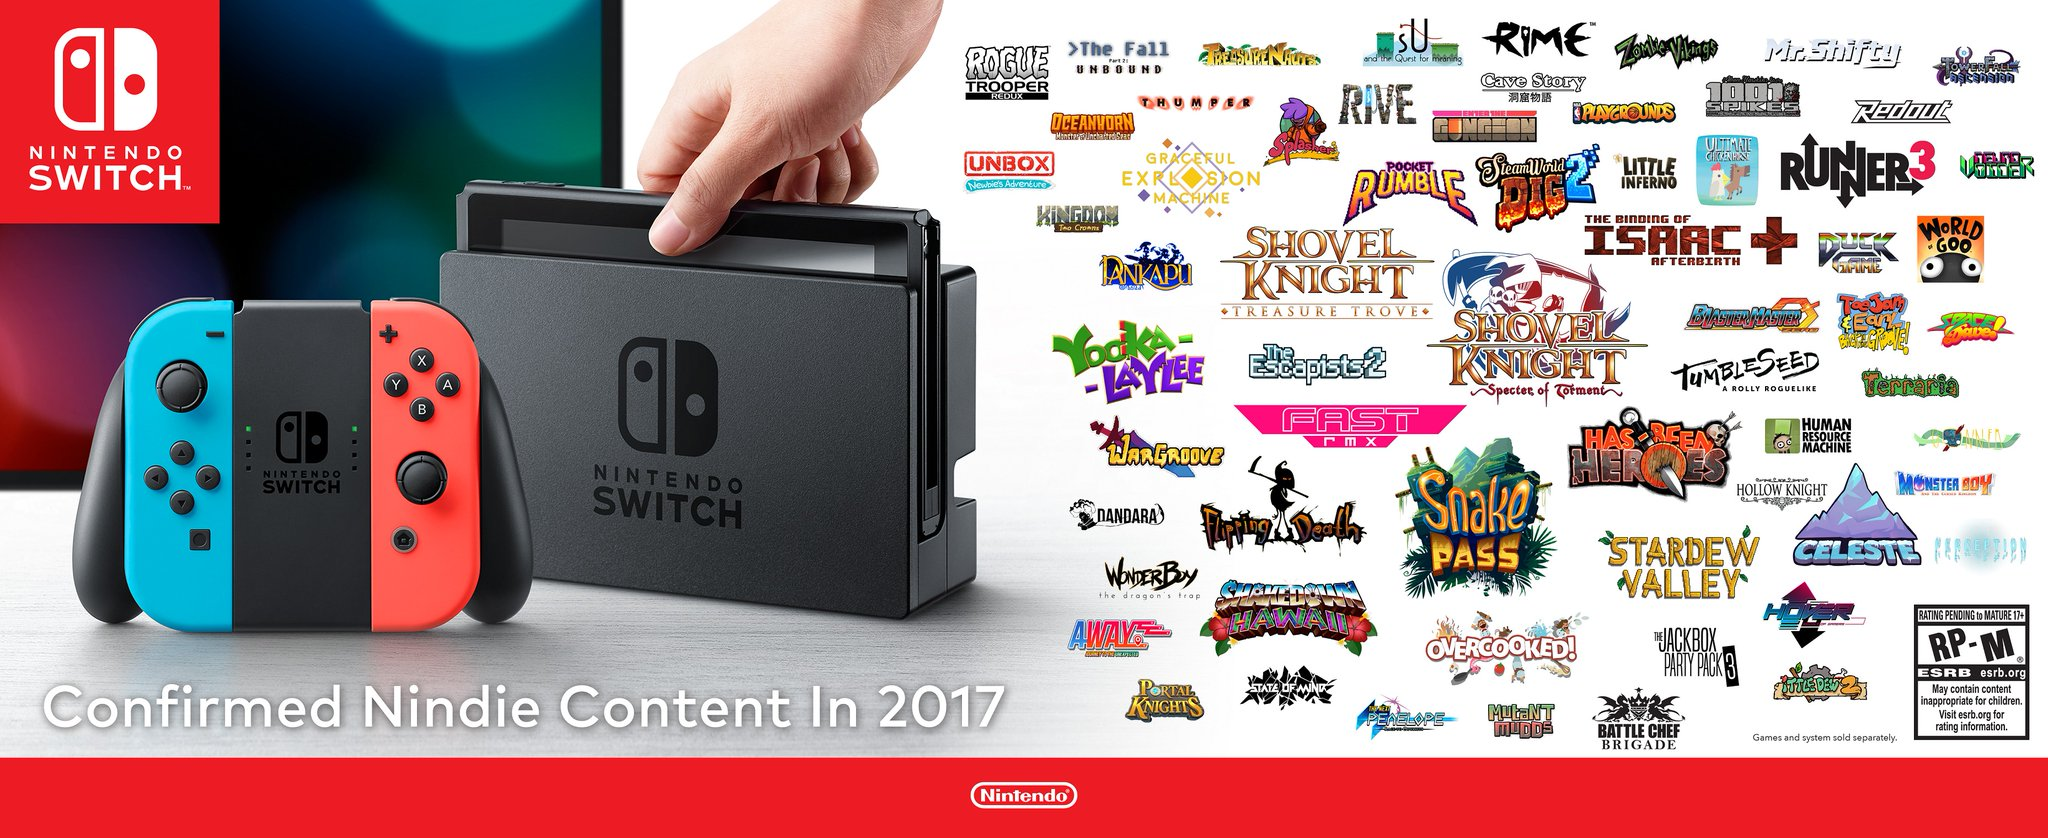 nindies_nintendo_switch-81.jpg